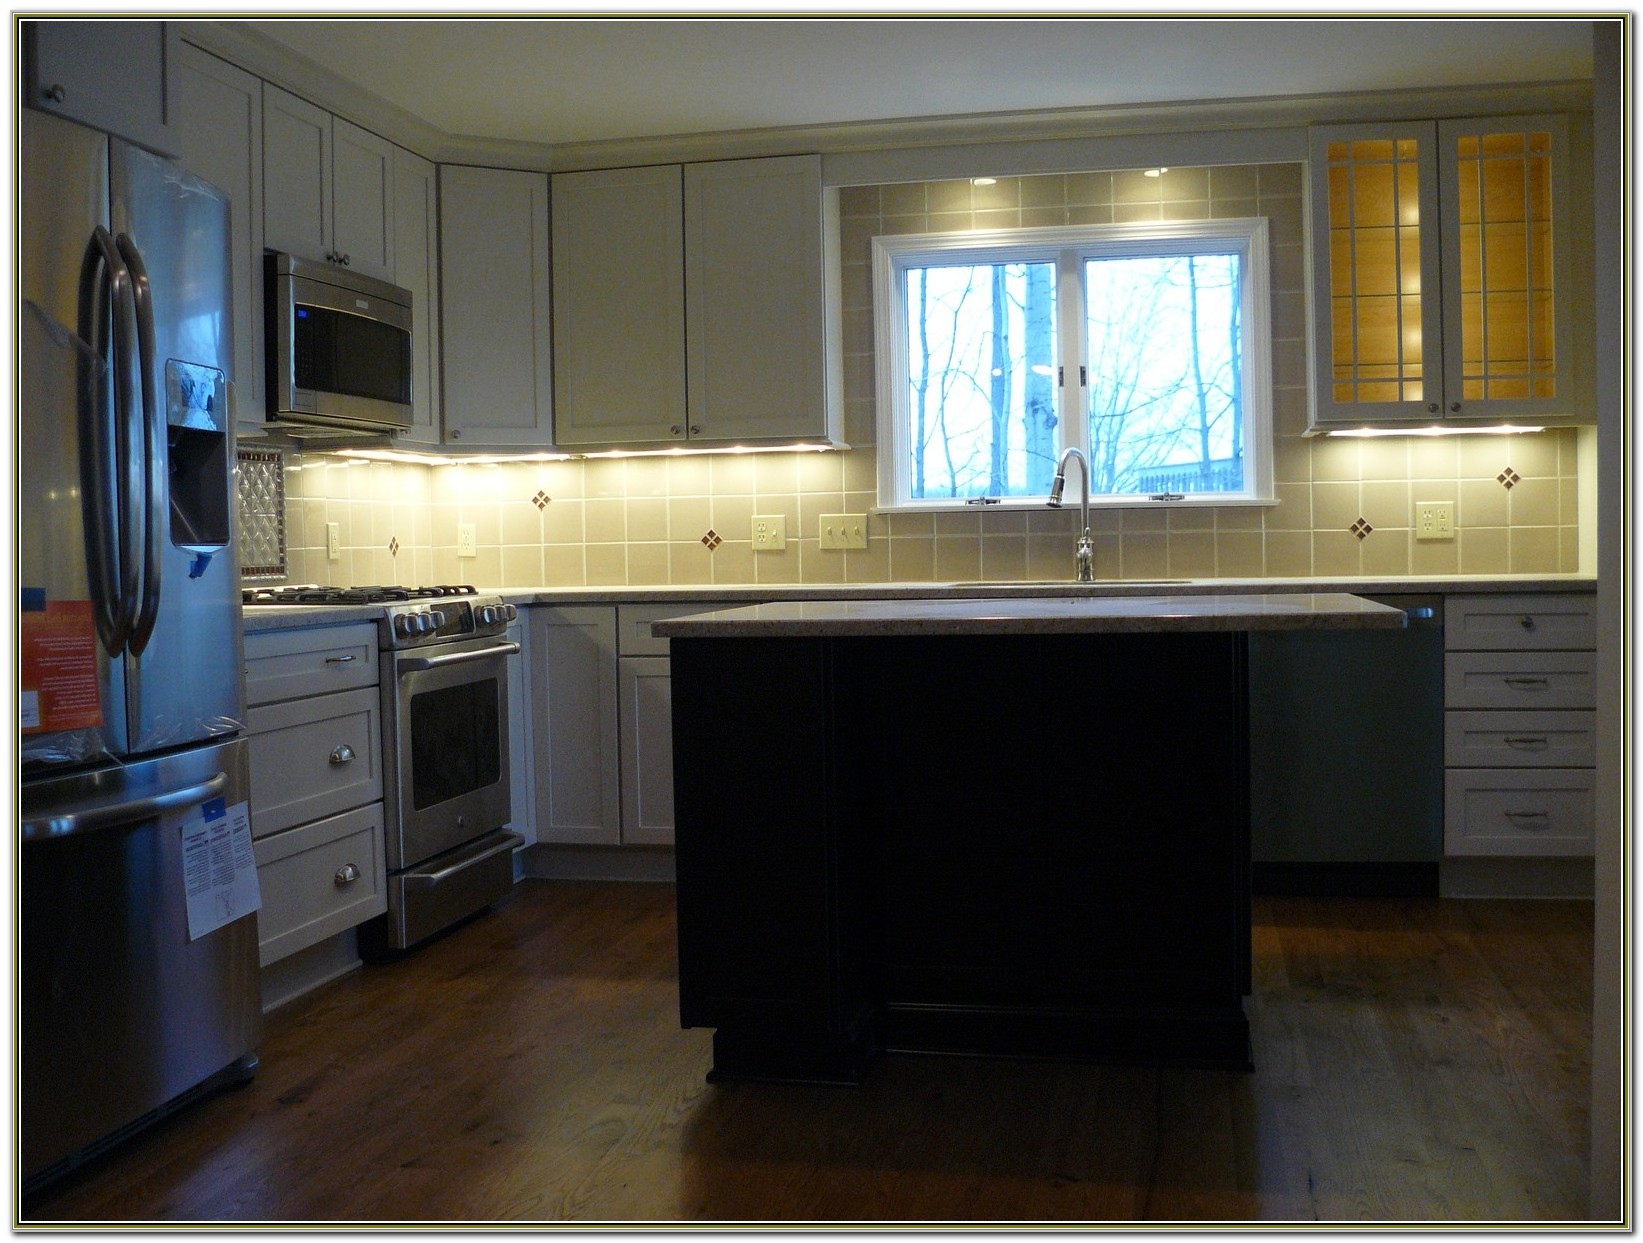 Hardwired Dimmable Under Cabinet Led Lighting